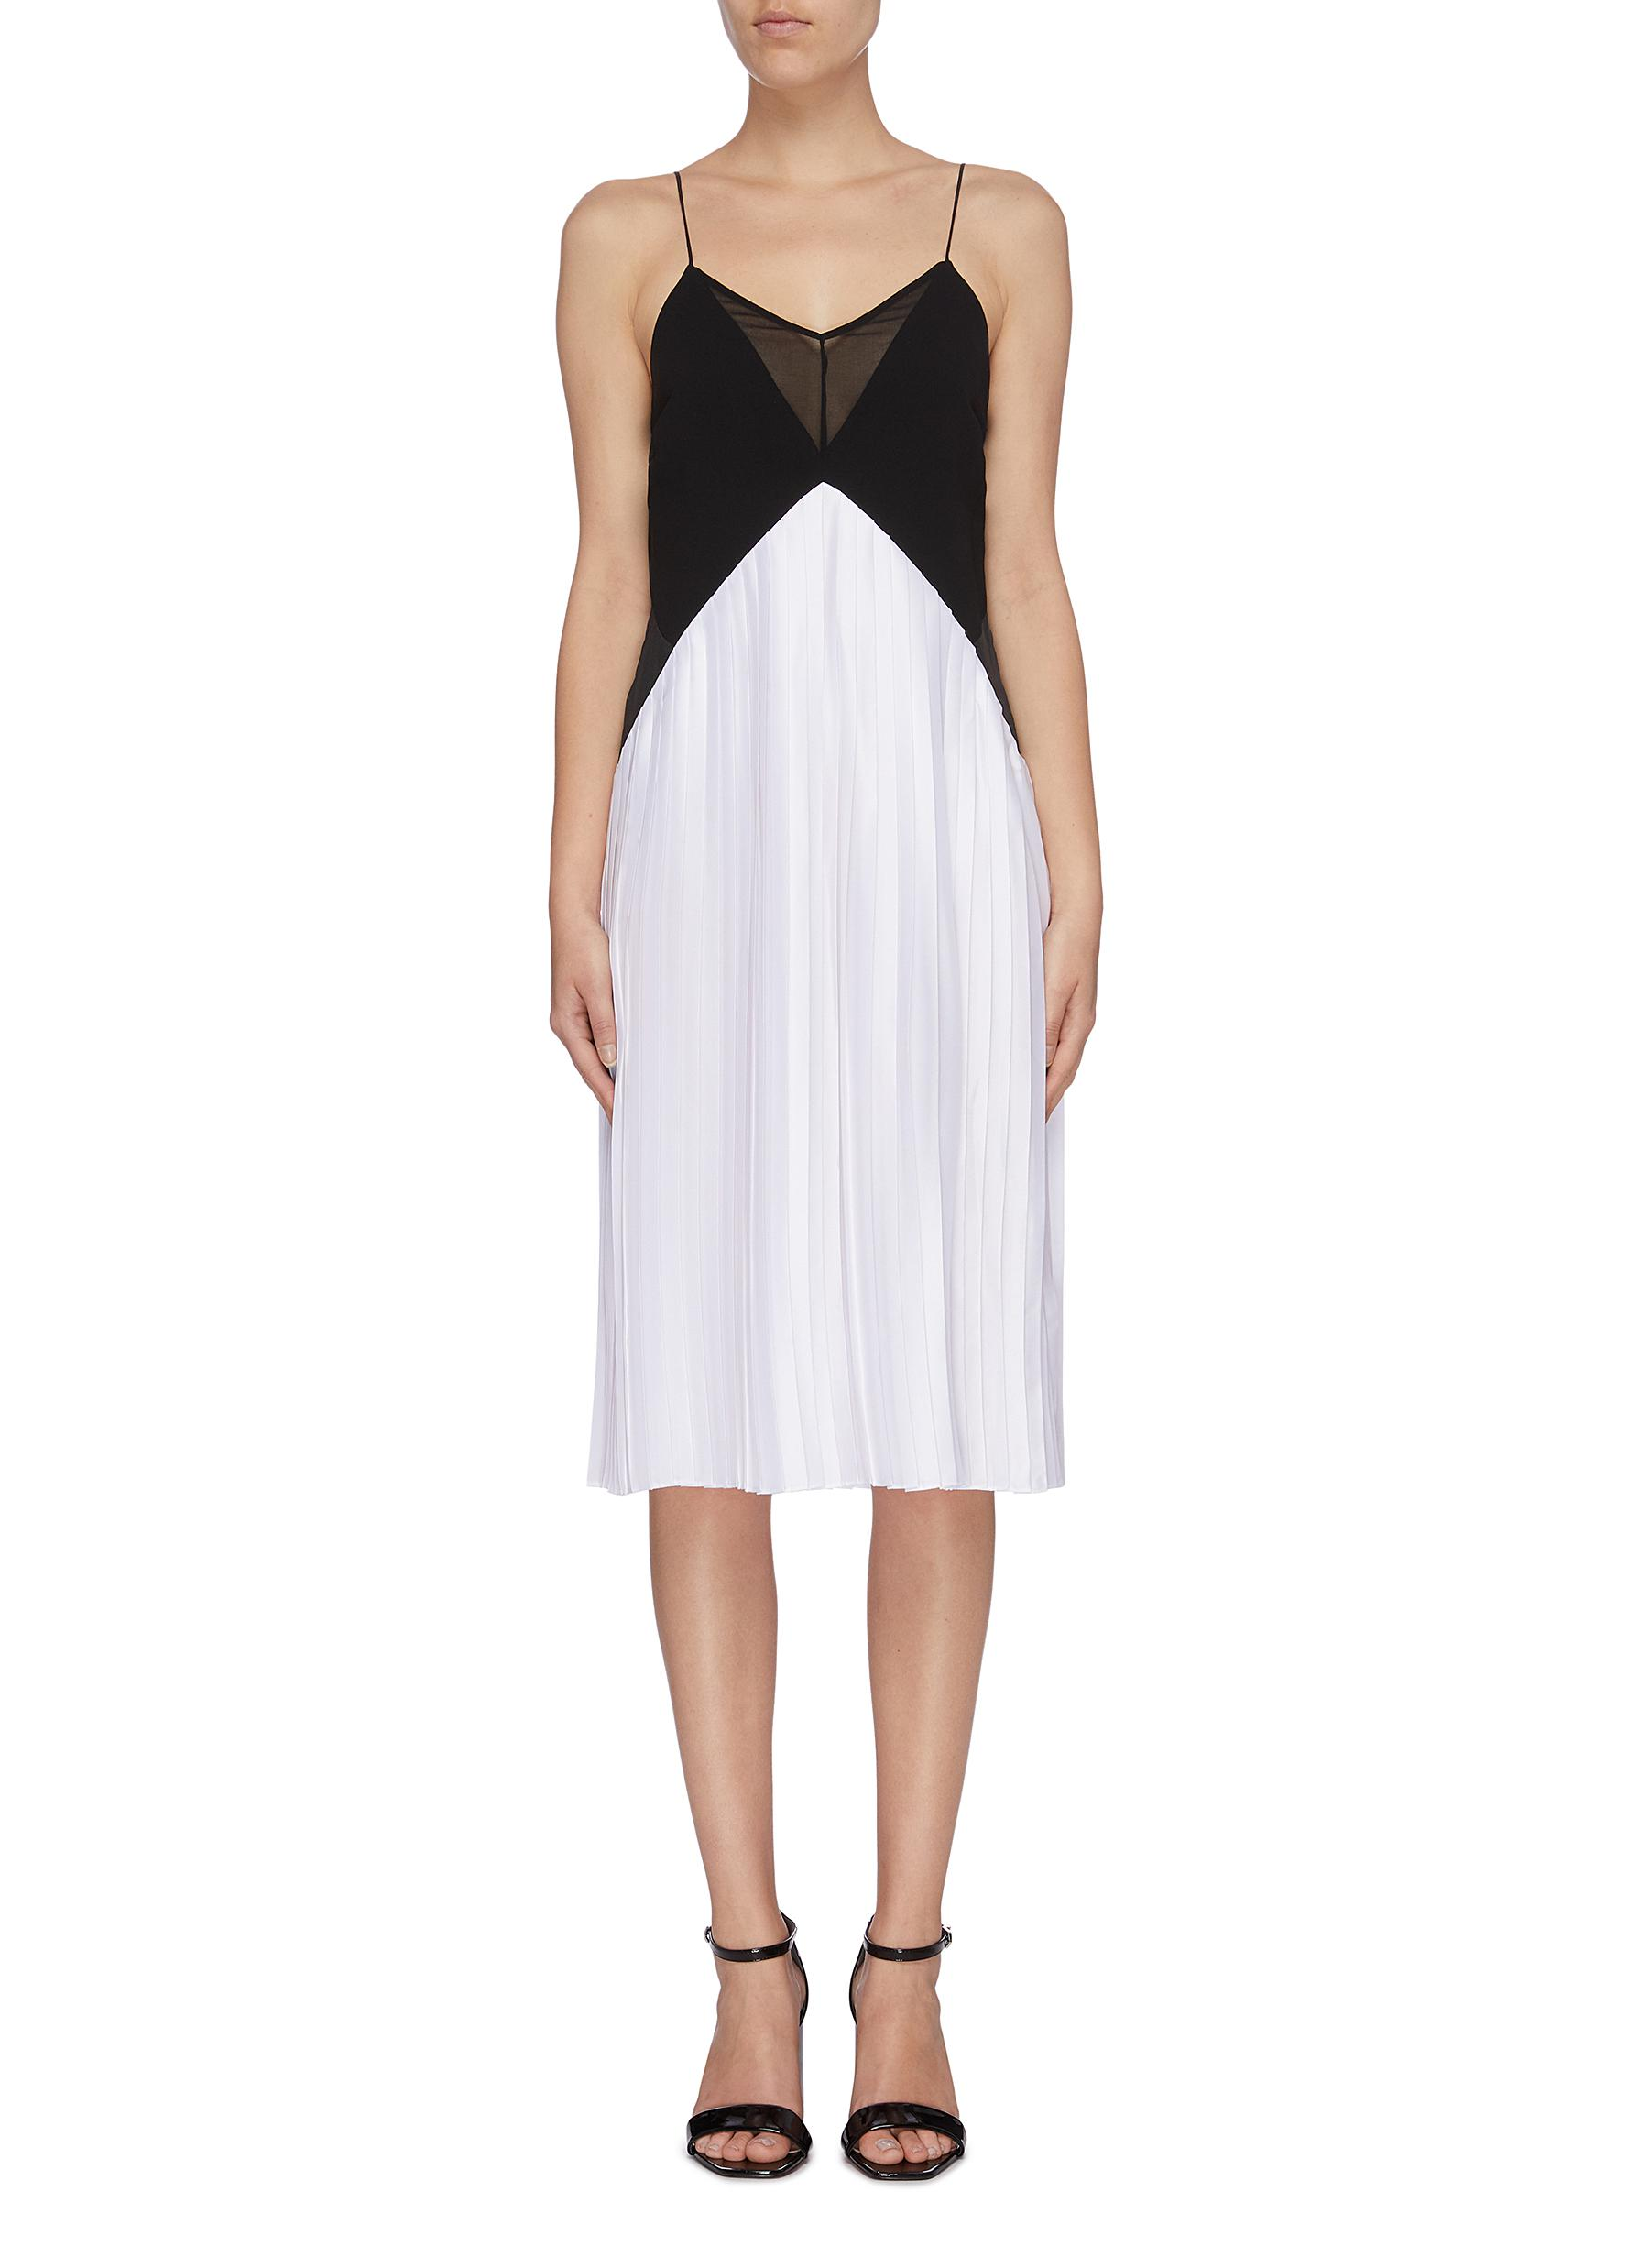 Colourblock pleated camisole dress by Victoria, Victoria Beckham